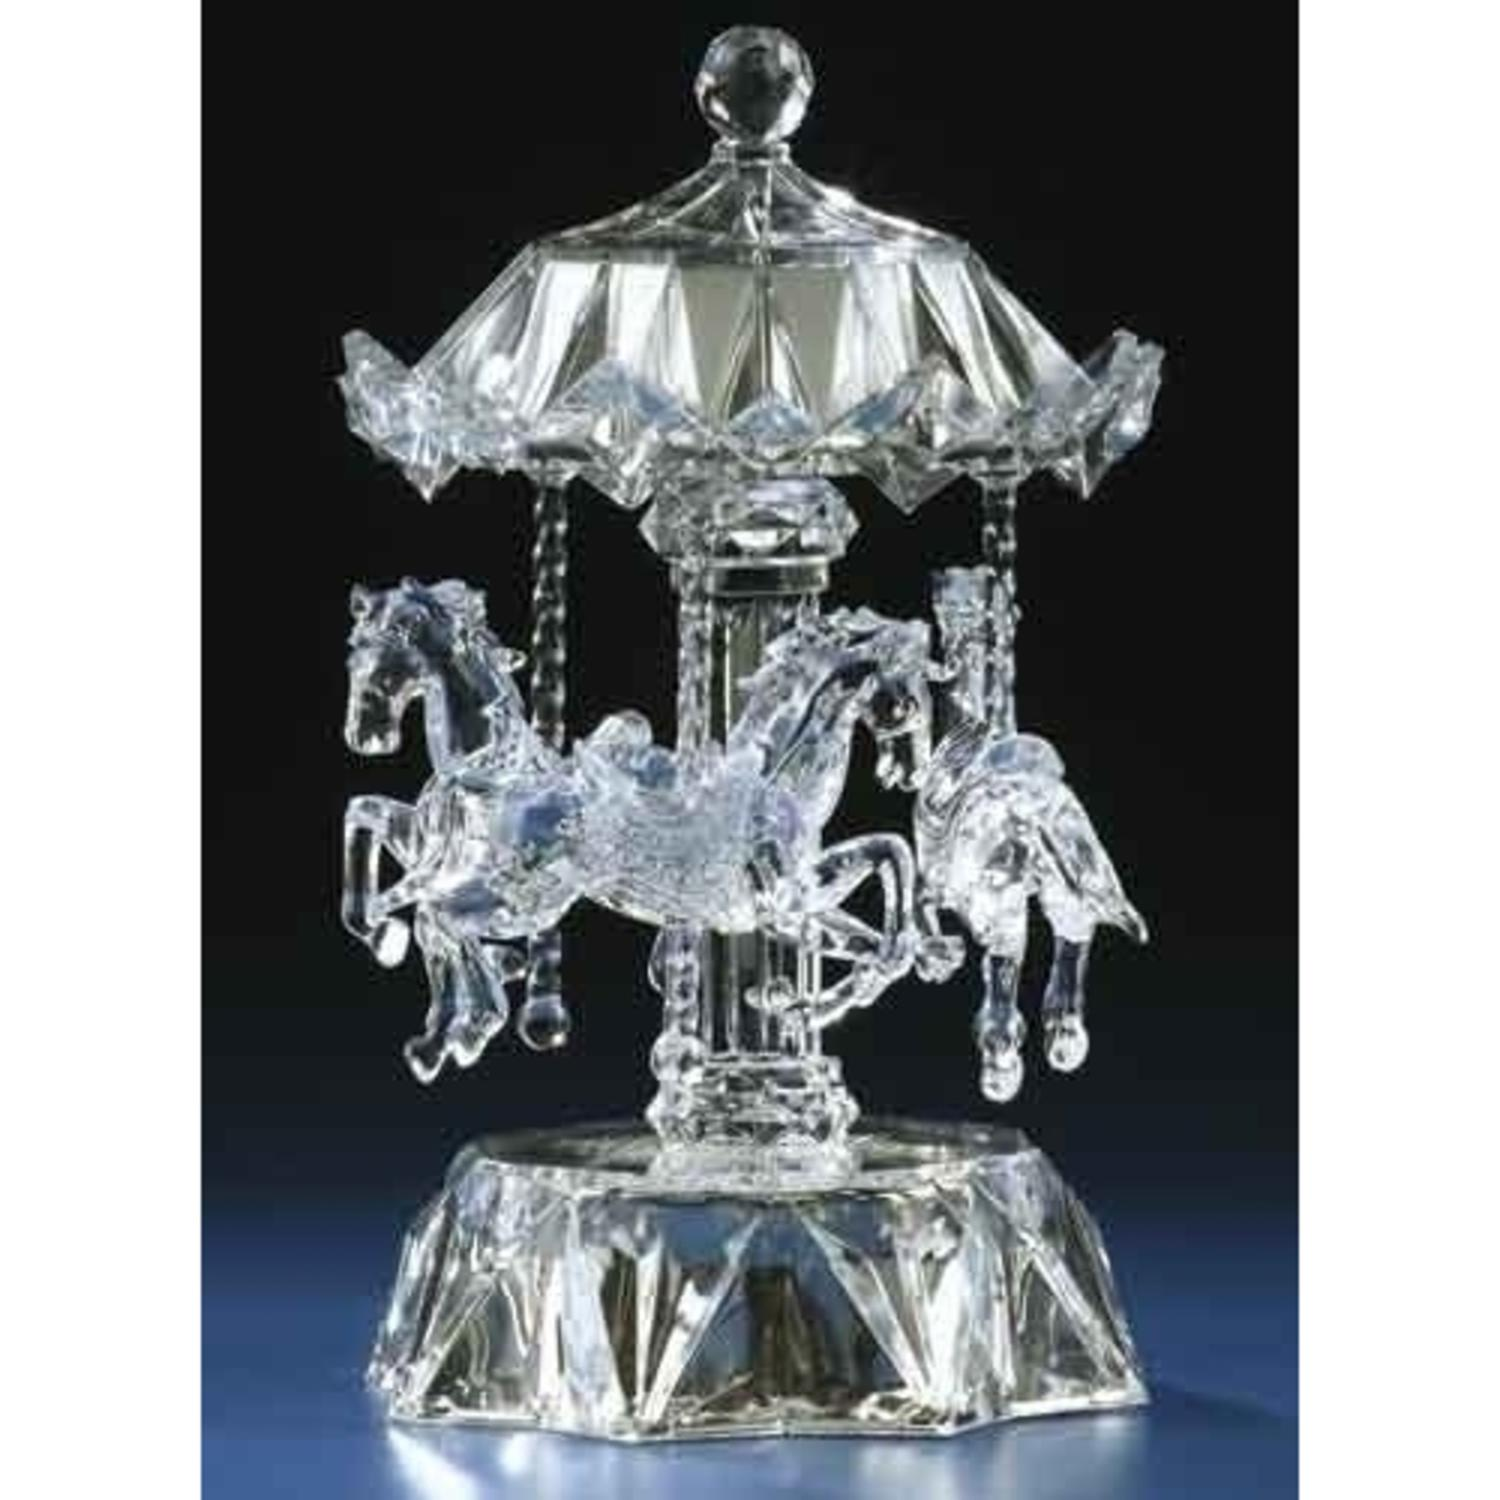 Icy Crystal LED Lighted Love Makes the World Go Round Musical Animated Carousel